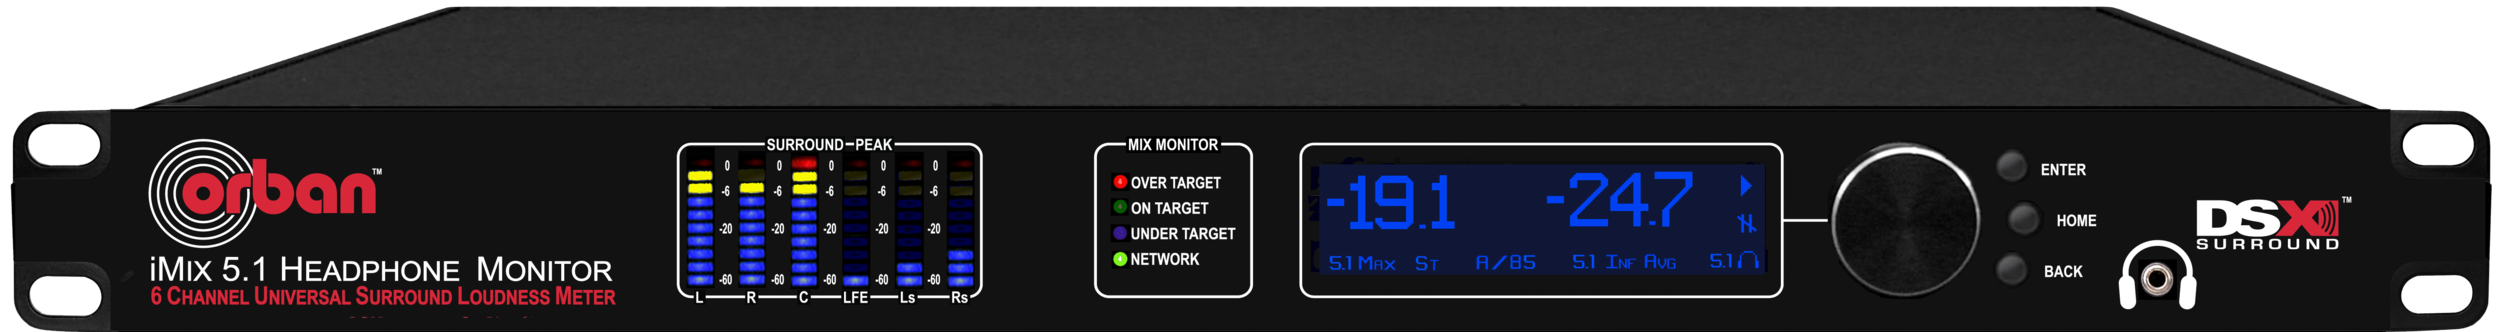 10001 iMix Monitor Front Label FIXES.png